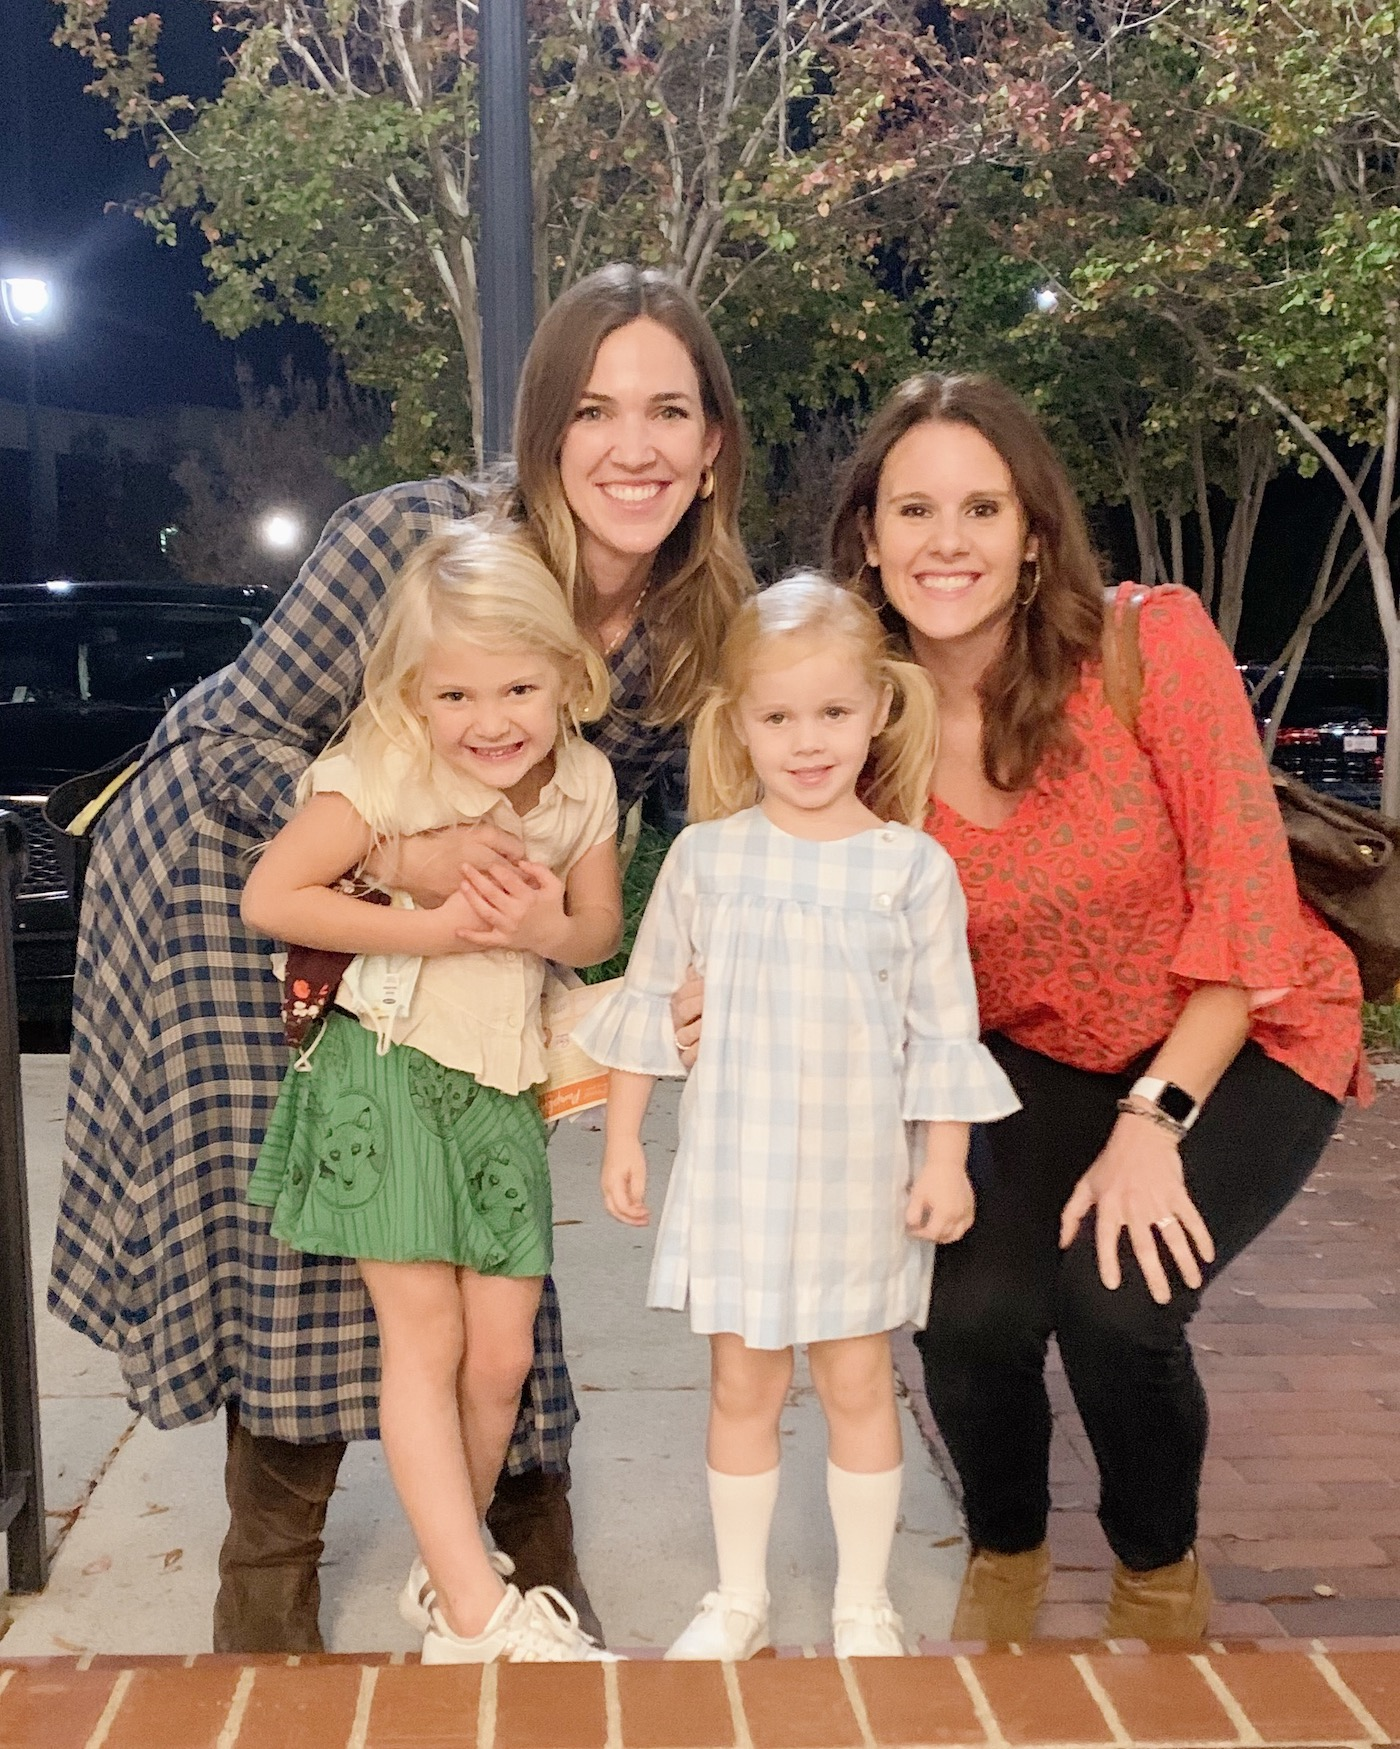 A Girly Staycation at The Township in Ridgeland, MS